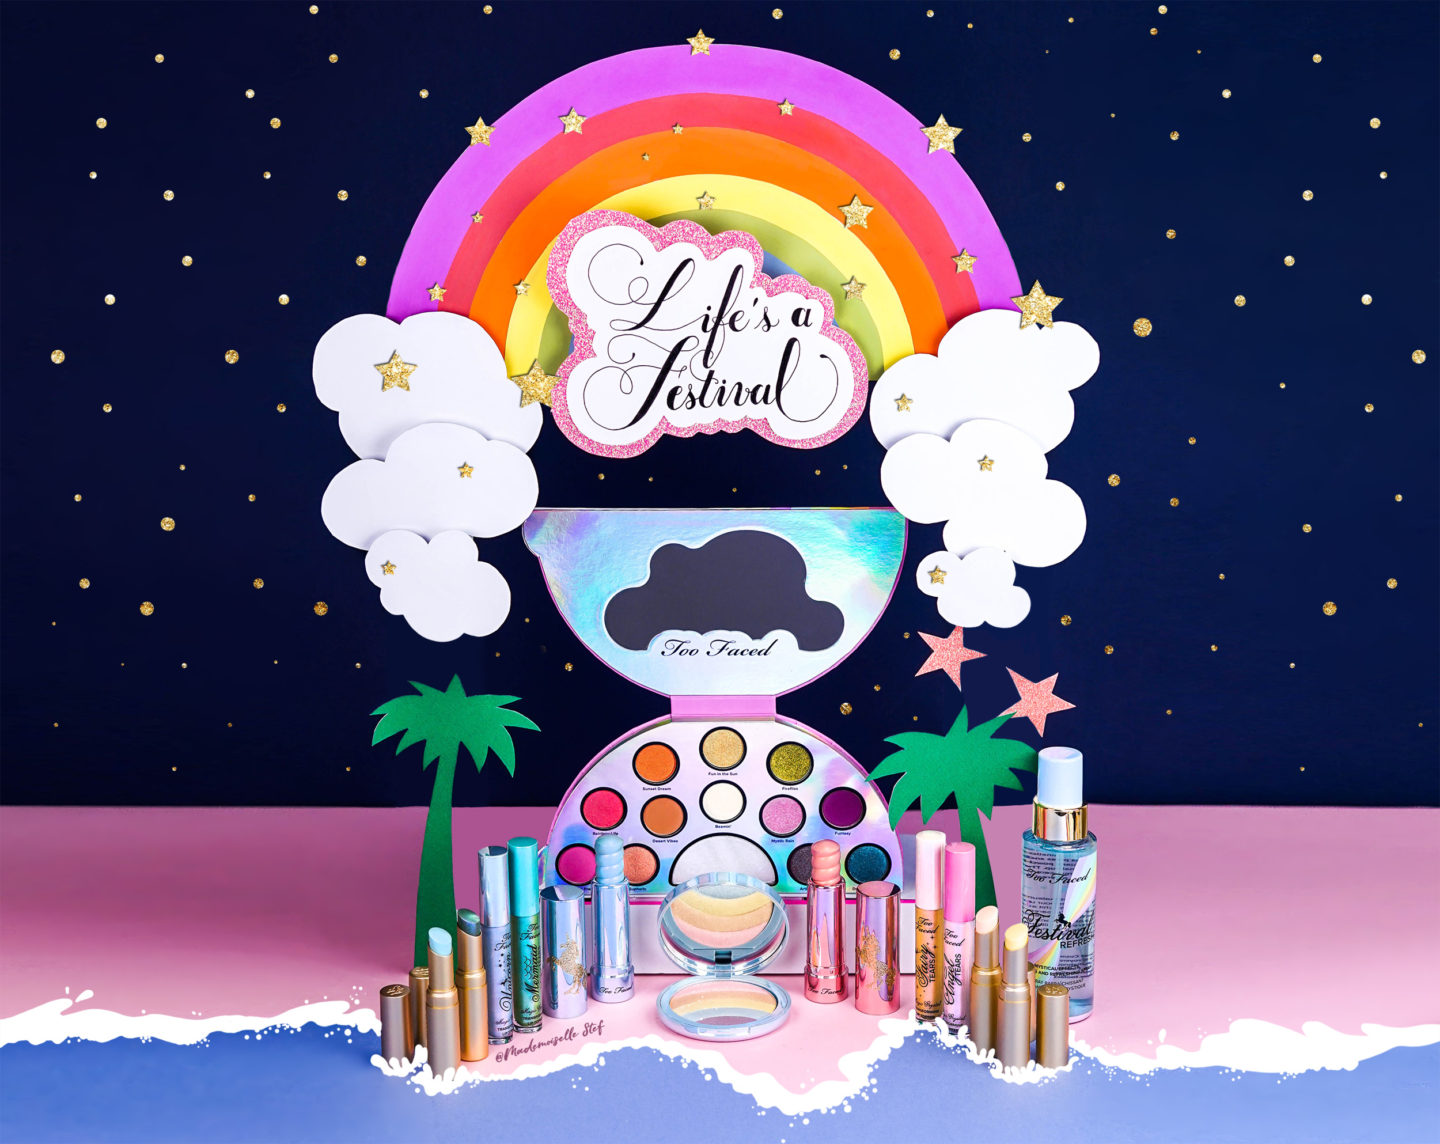 Lifes a Festival collection Too Faced